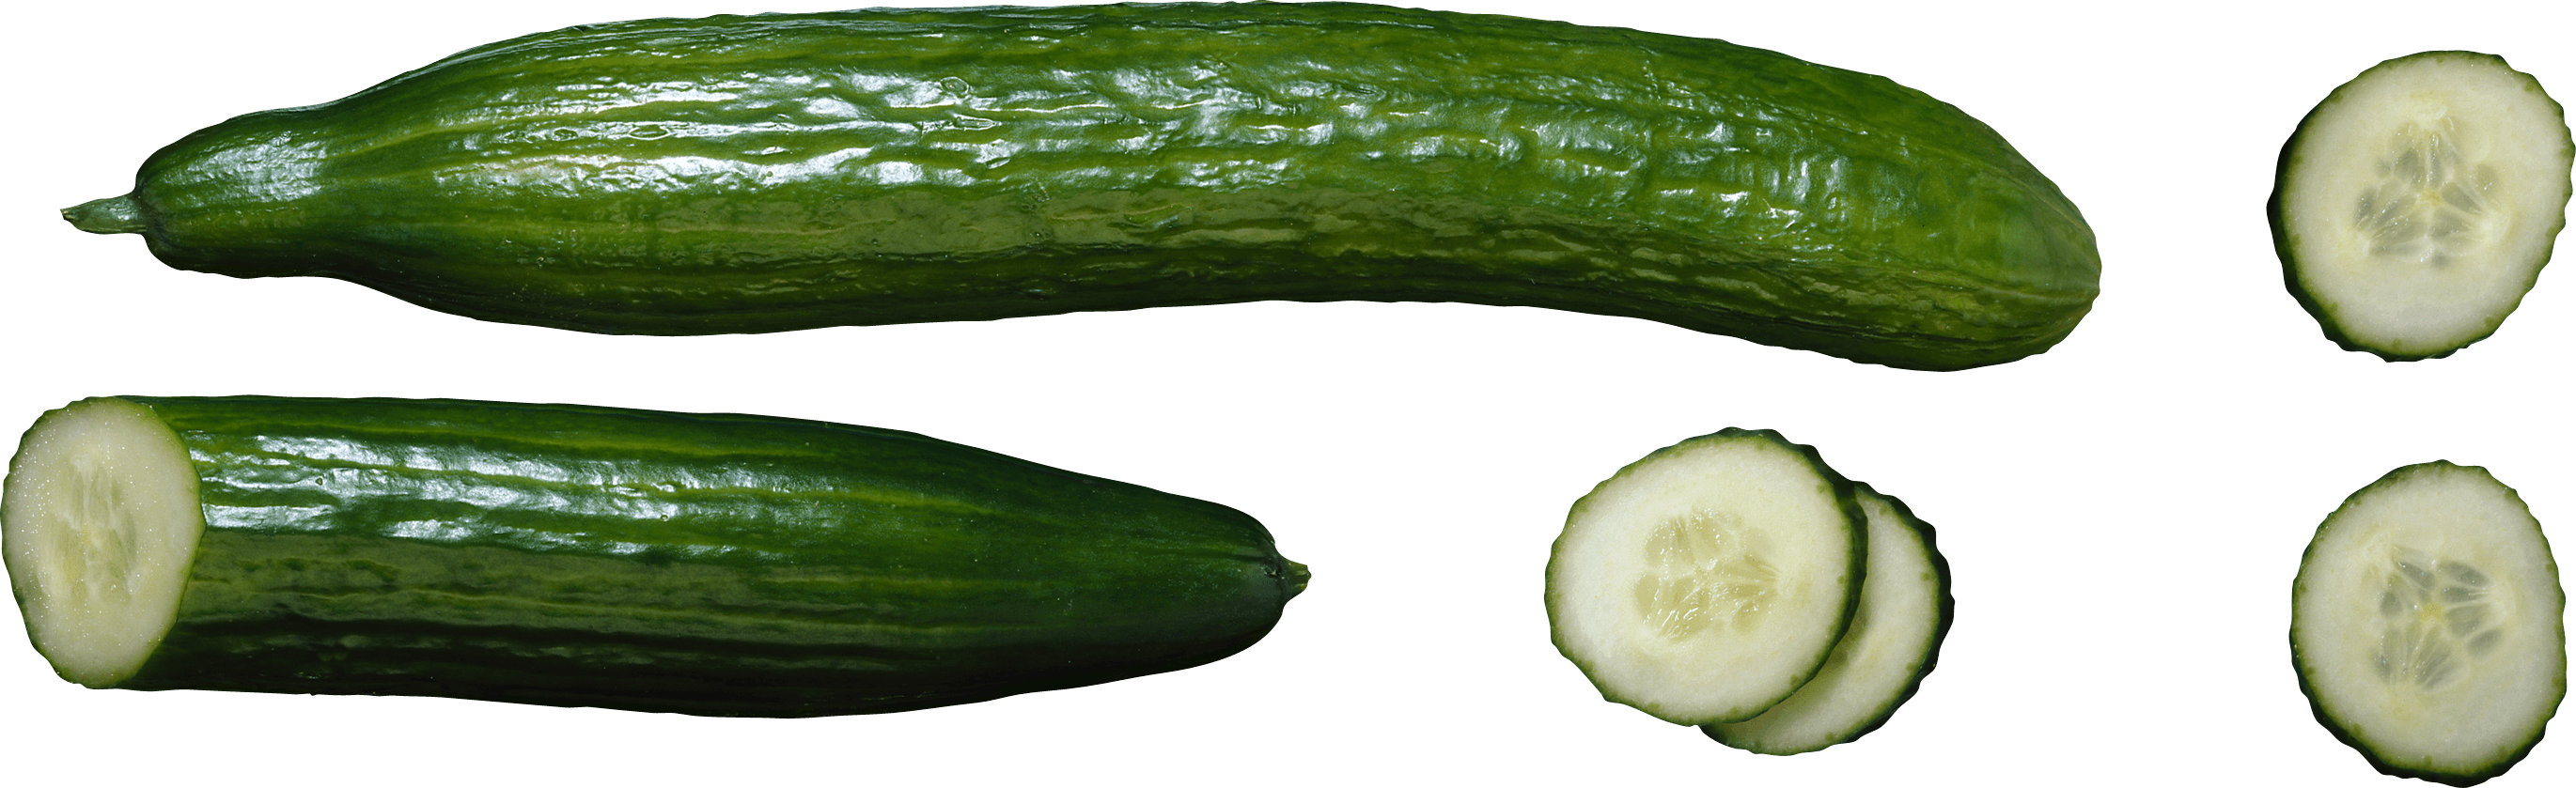 Green Cucumber Png Image PNG Image